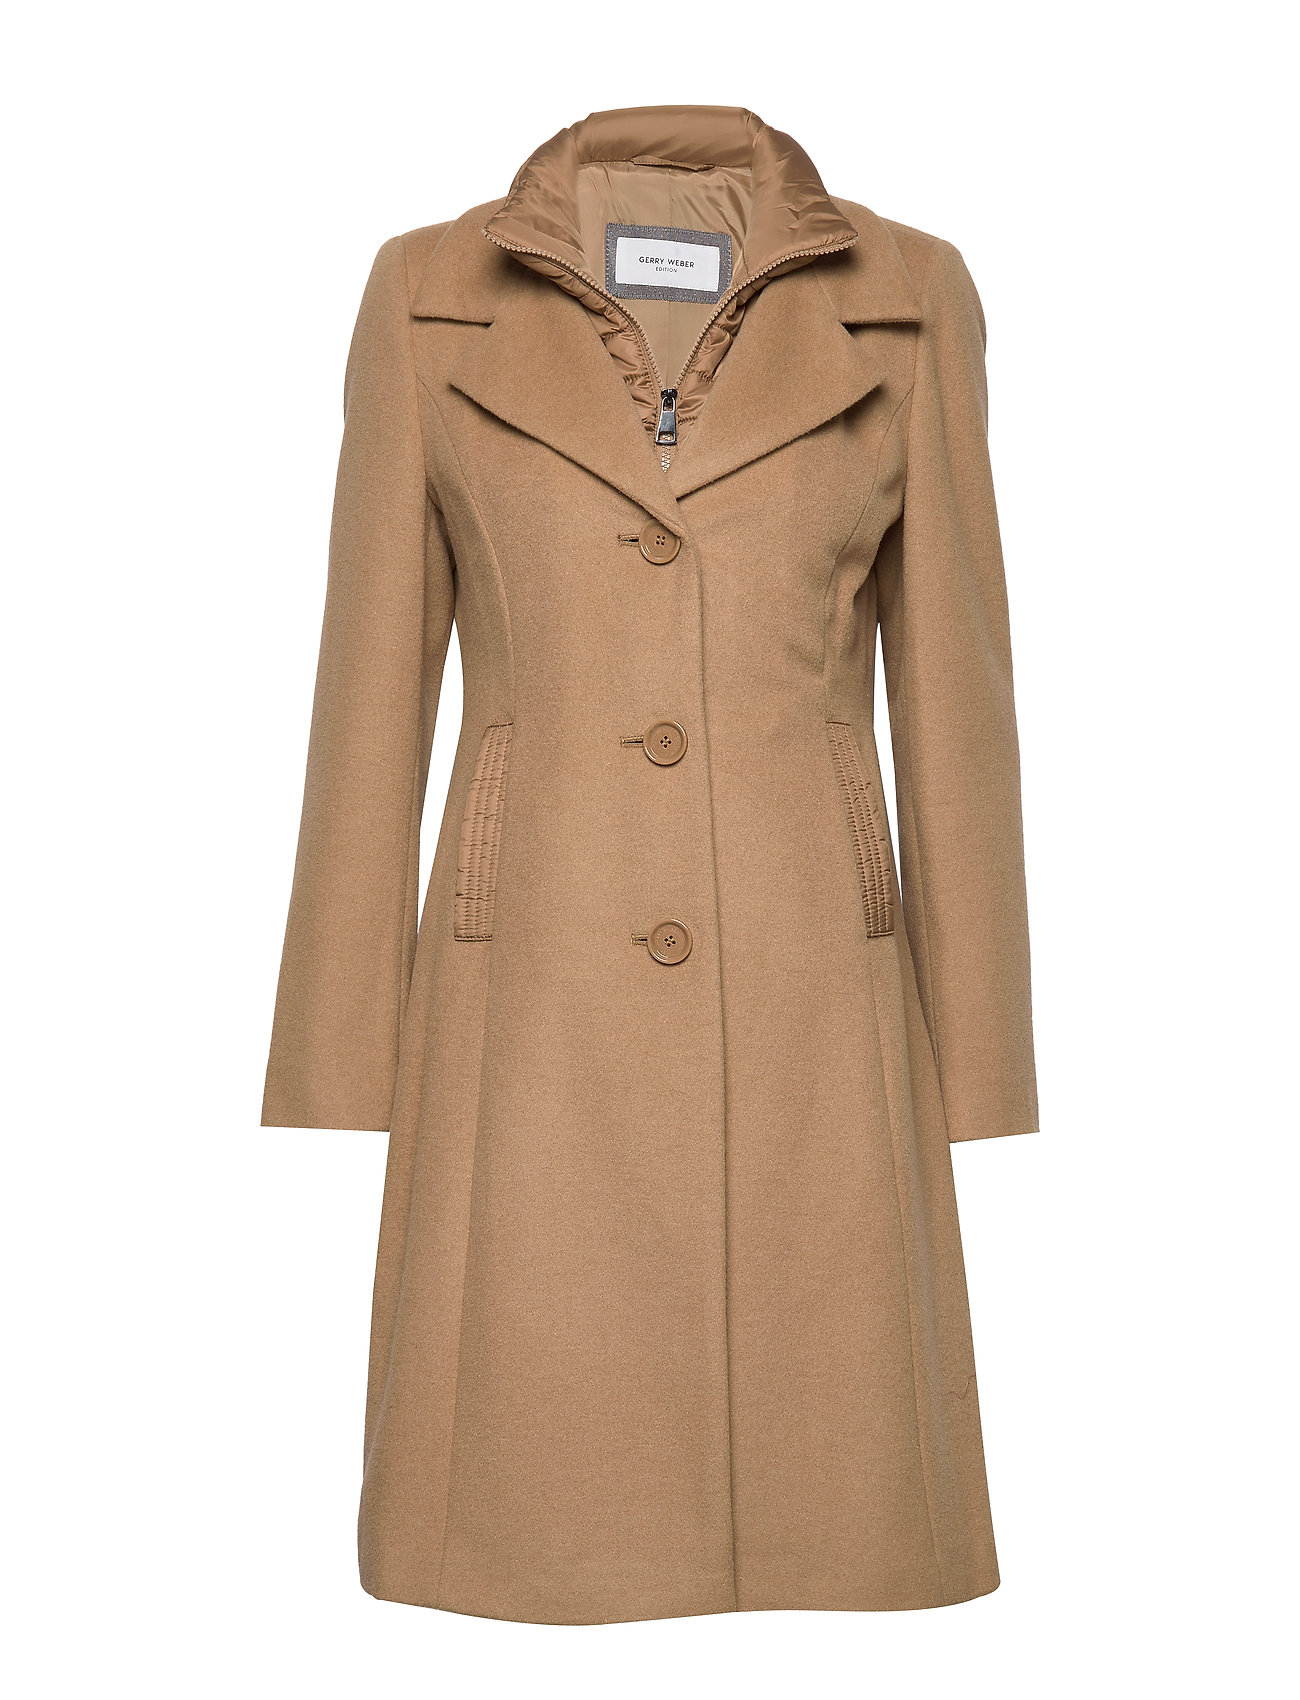 Gerry Weber Edition COAT WOOL - CAMEL